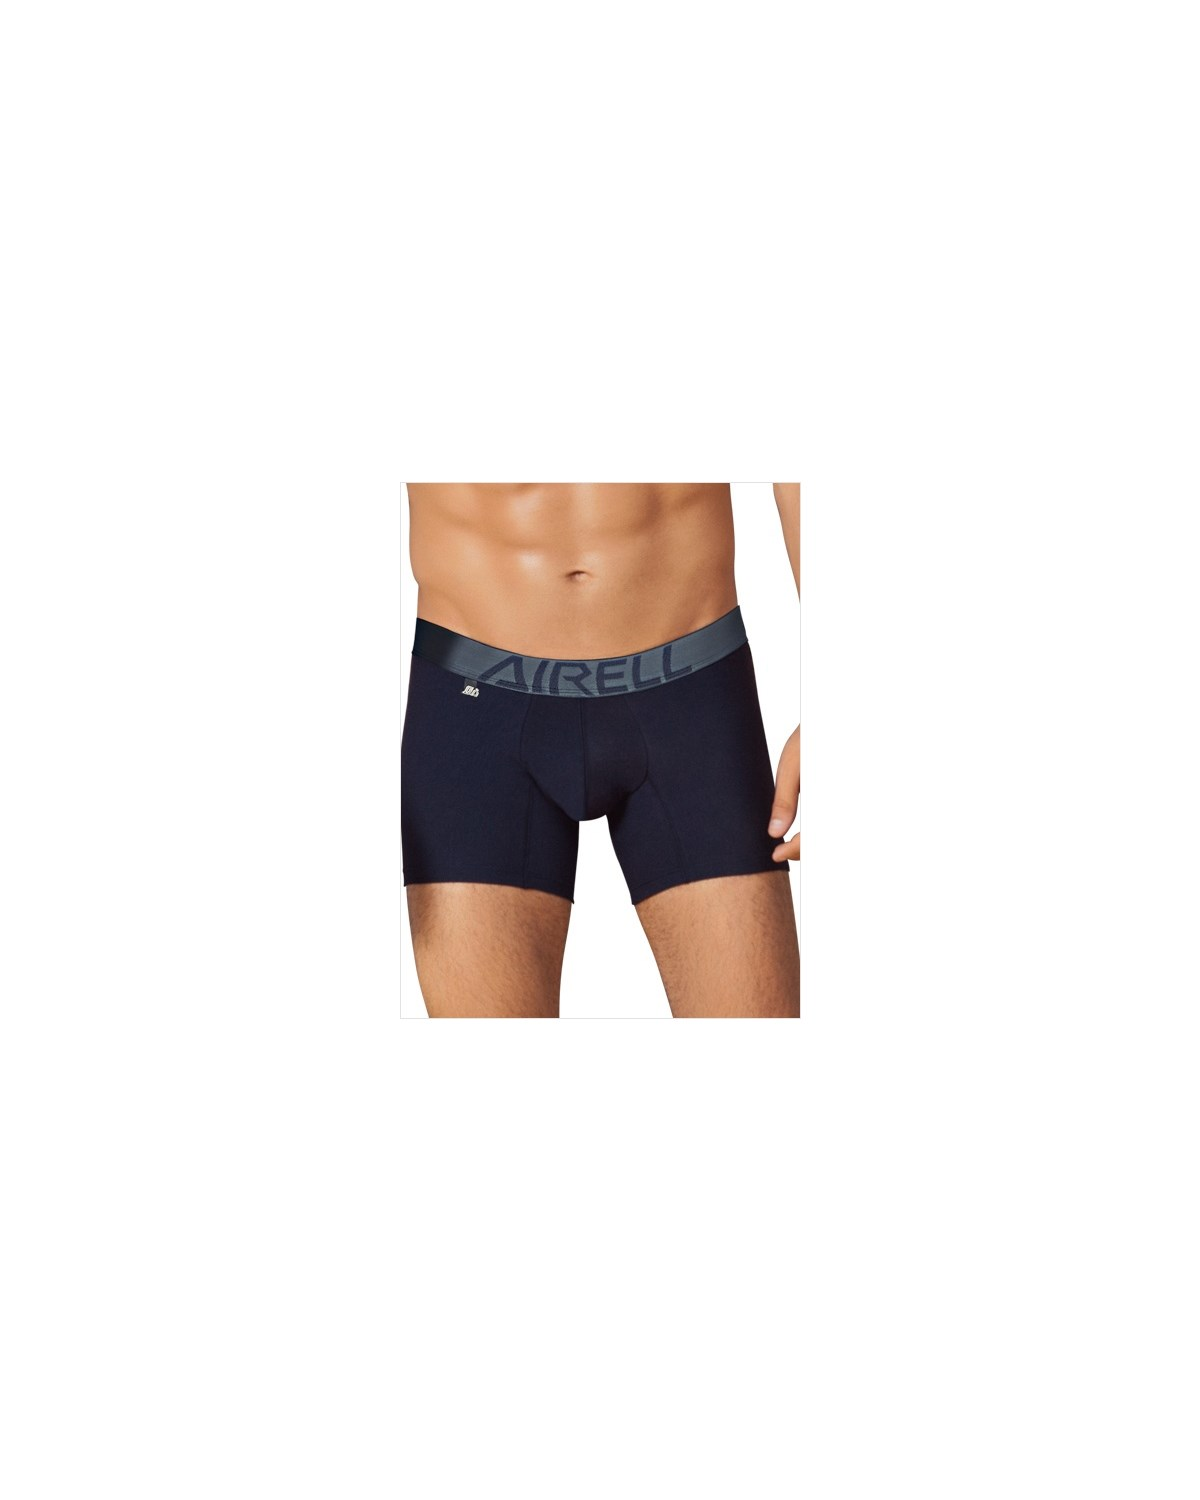 leo adjust-fit cotton boxer brief-515- Blue-MainImage